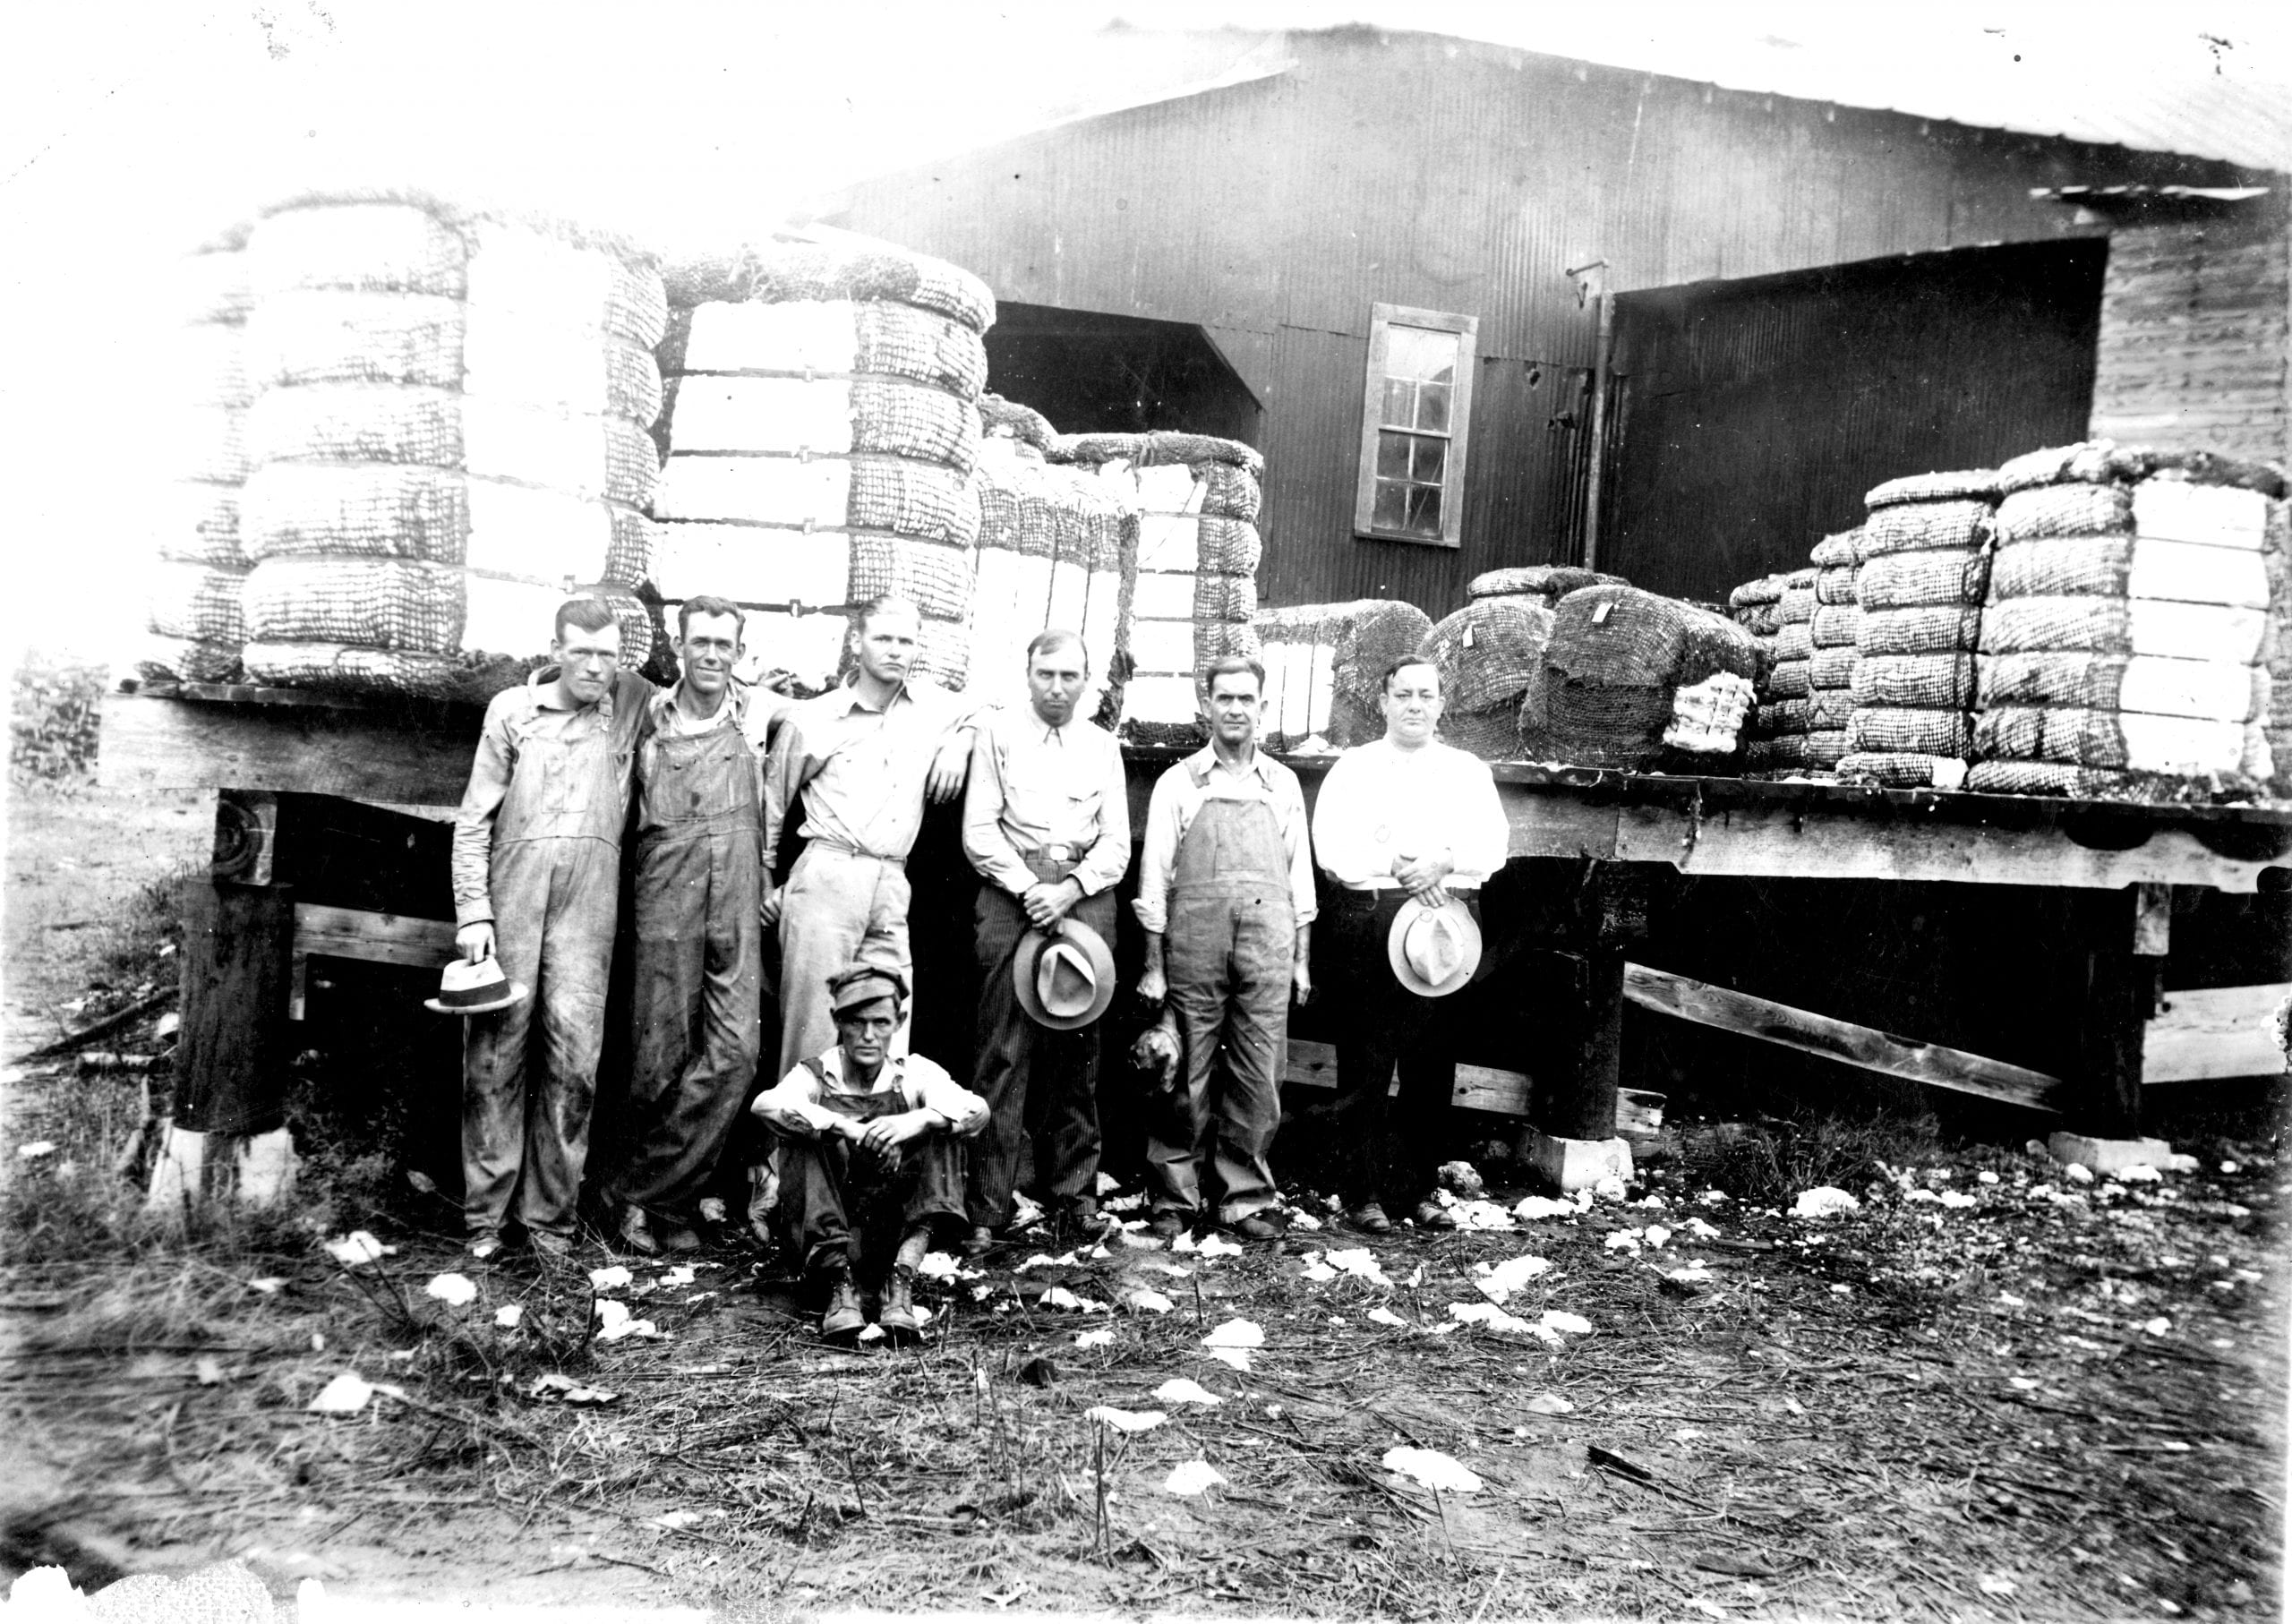 1934 – Swifton Gin – Cotton Bales